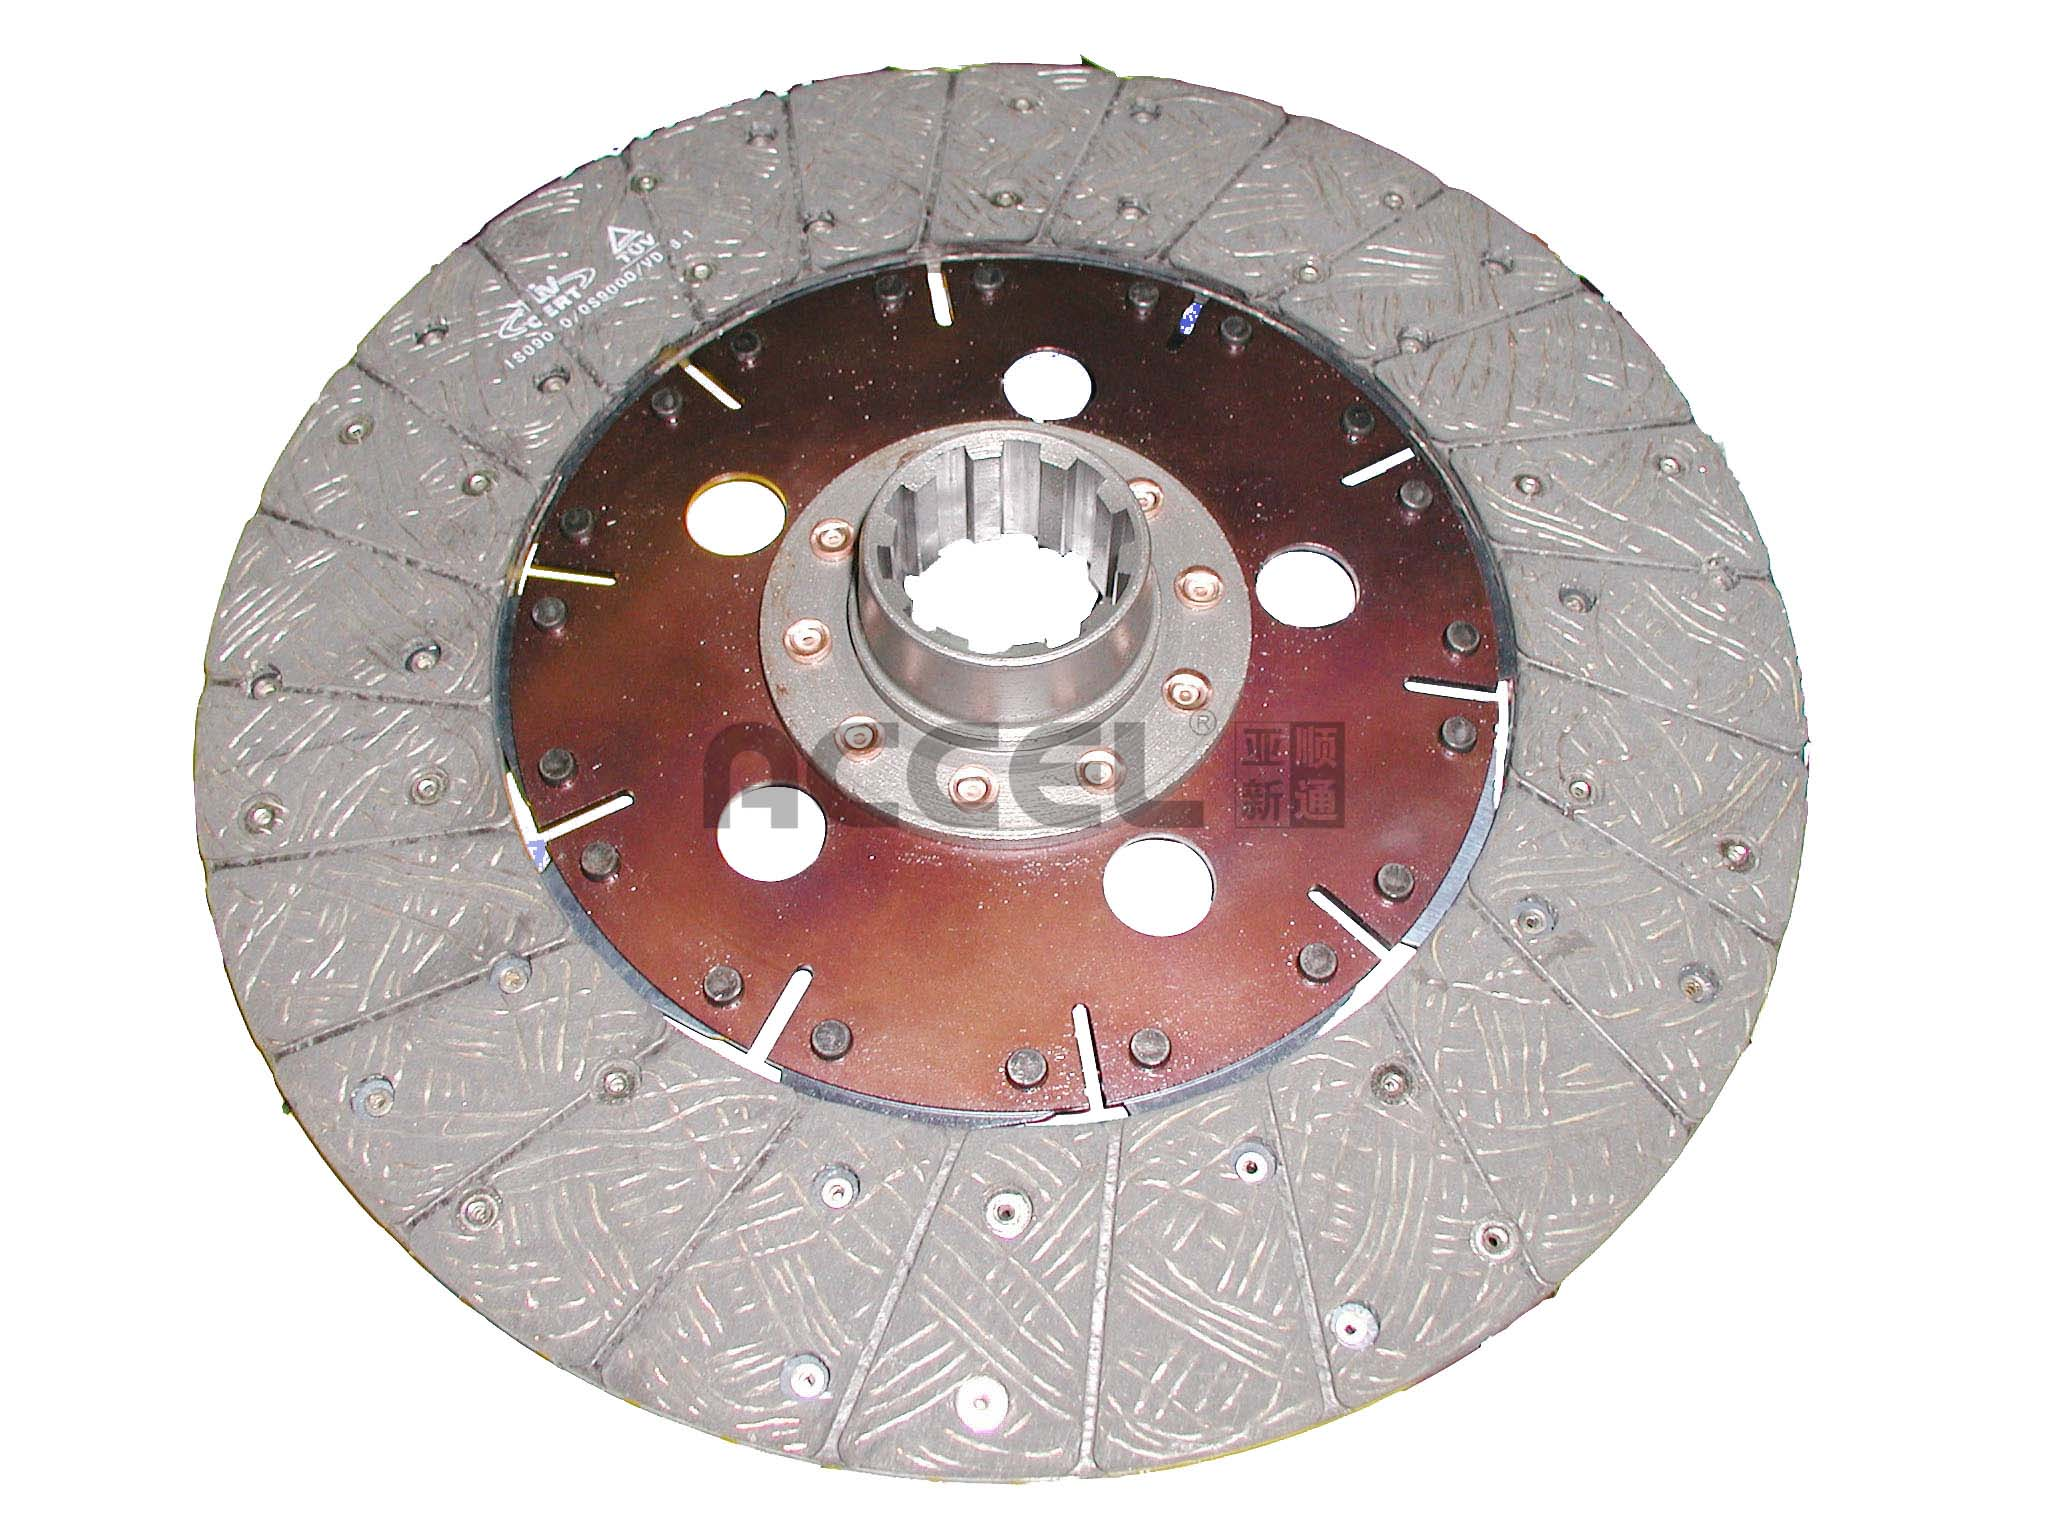 Clutch Disc/OE:NULL/302*190*10*44.6/AV-015/AgriculturalVehicles/CL0975